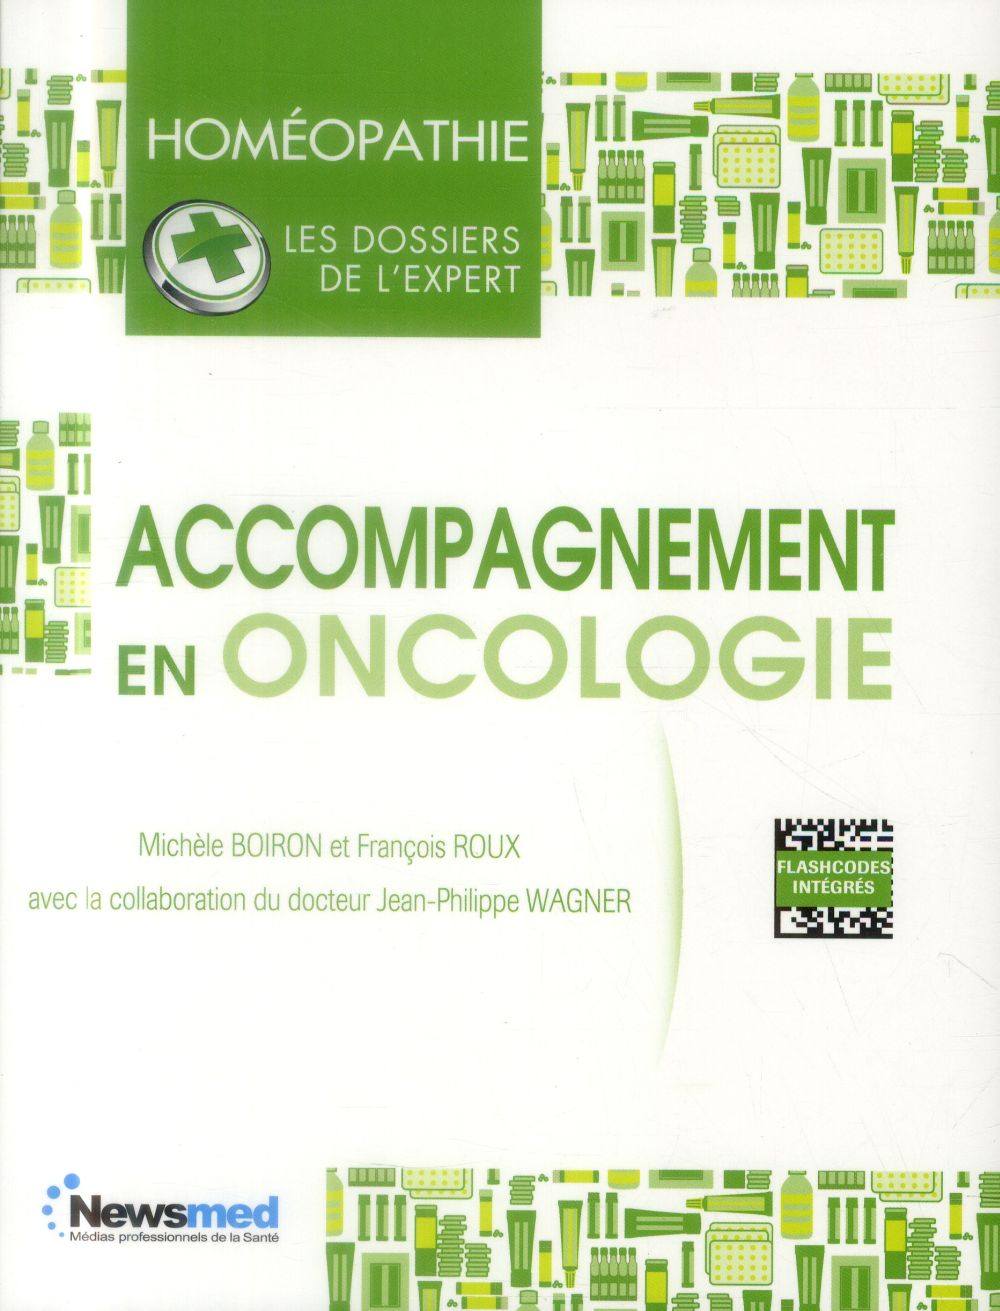 HOMEOPATHIE ACCOMPAGNEMENT EN ONCOLOGIE